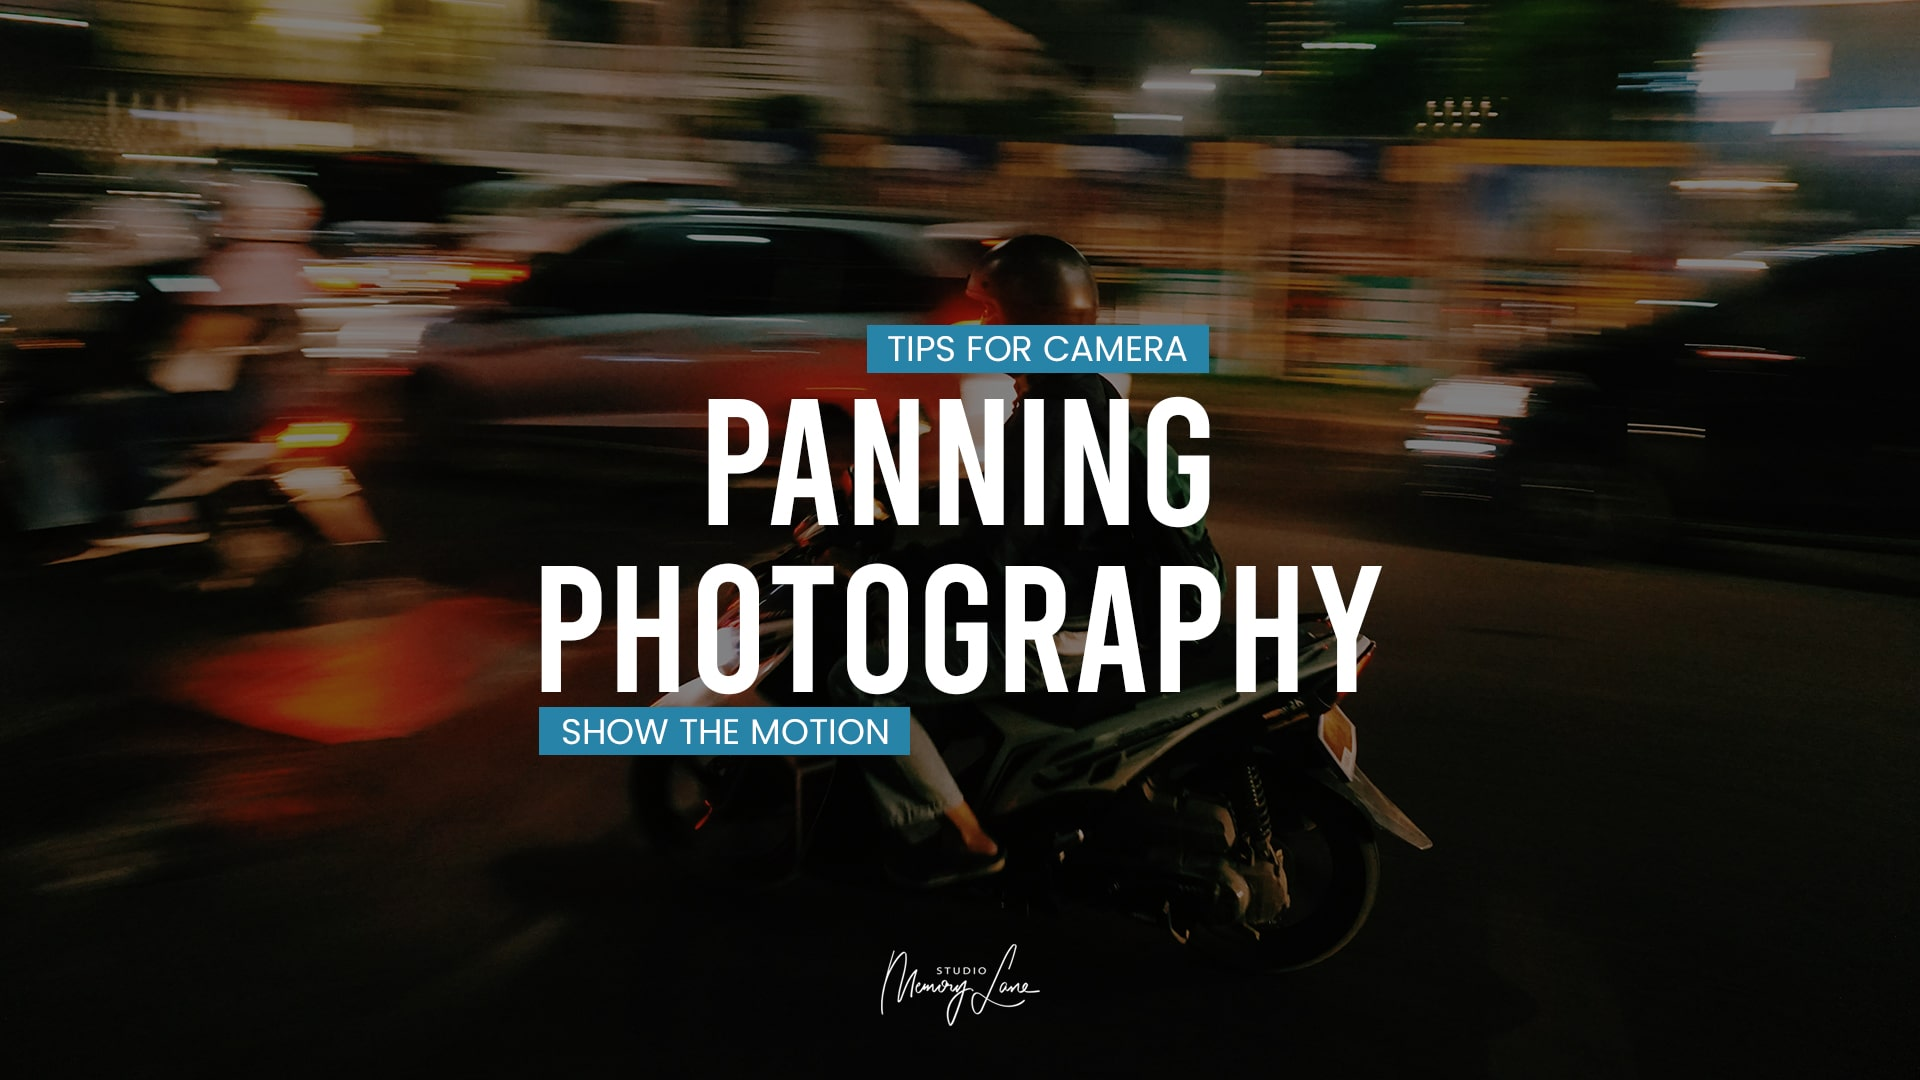 Tips for Camera Panning Photography